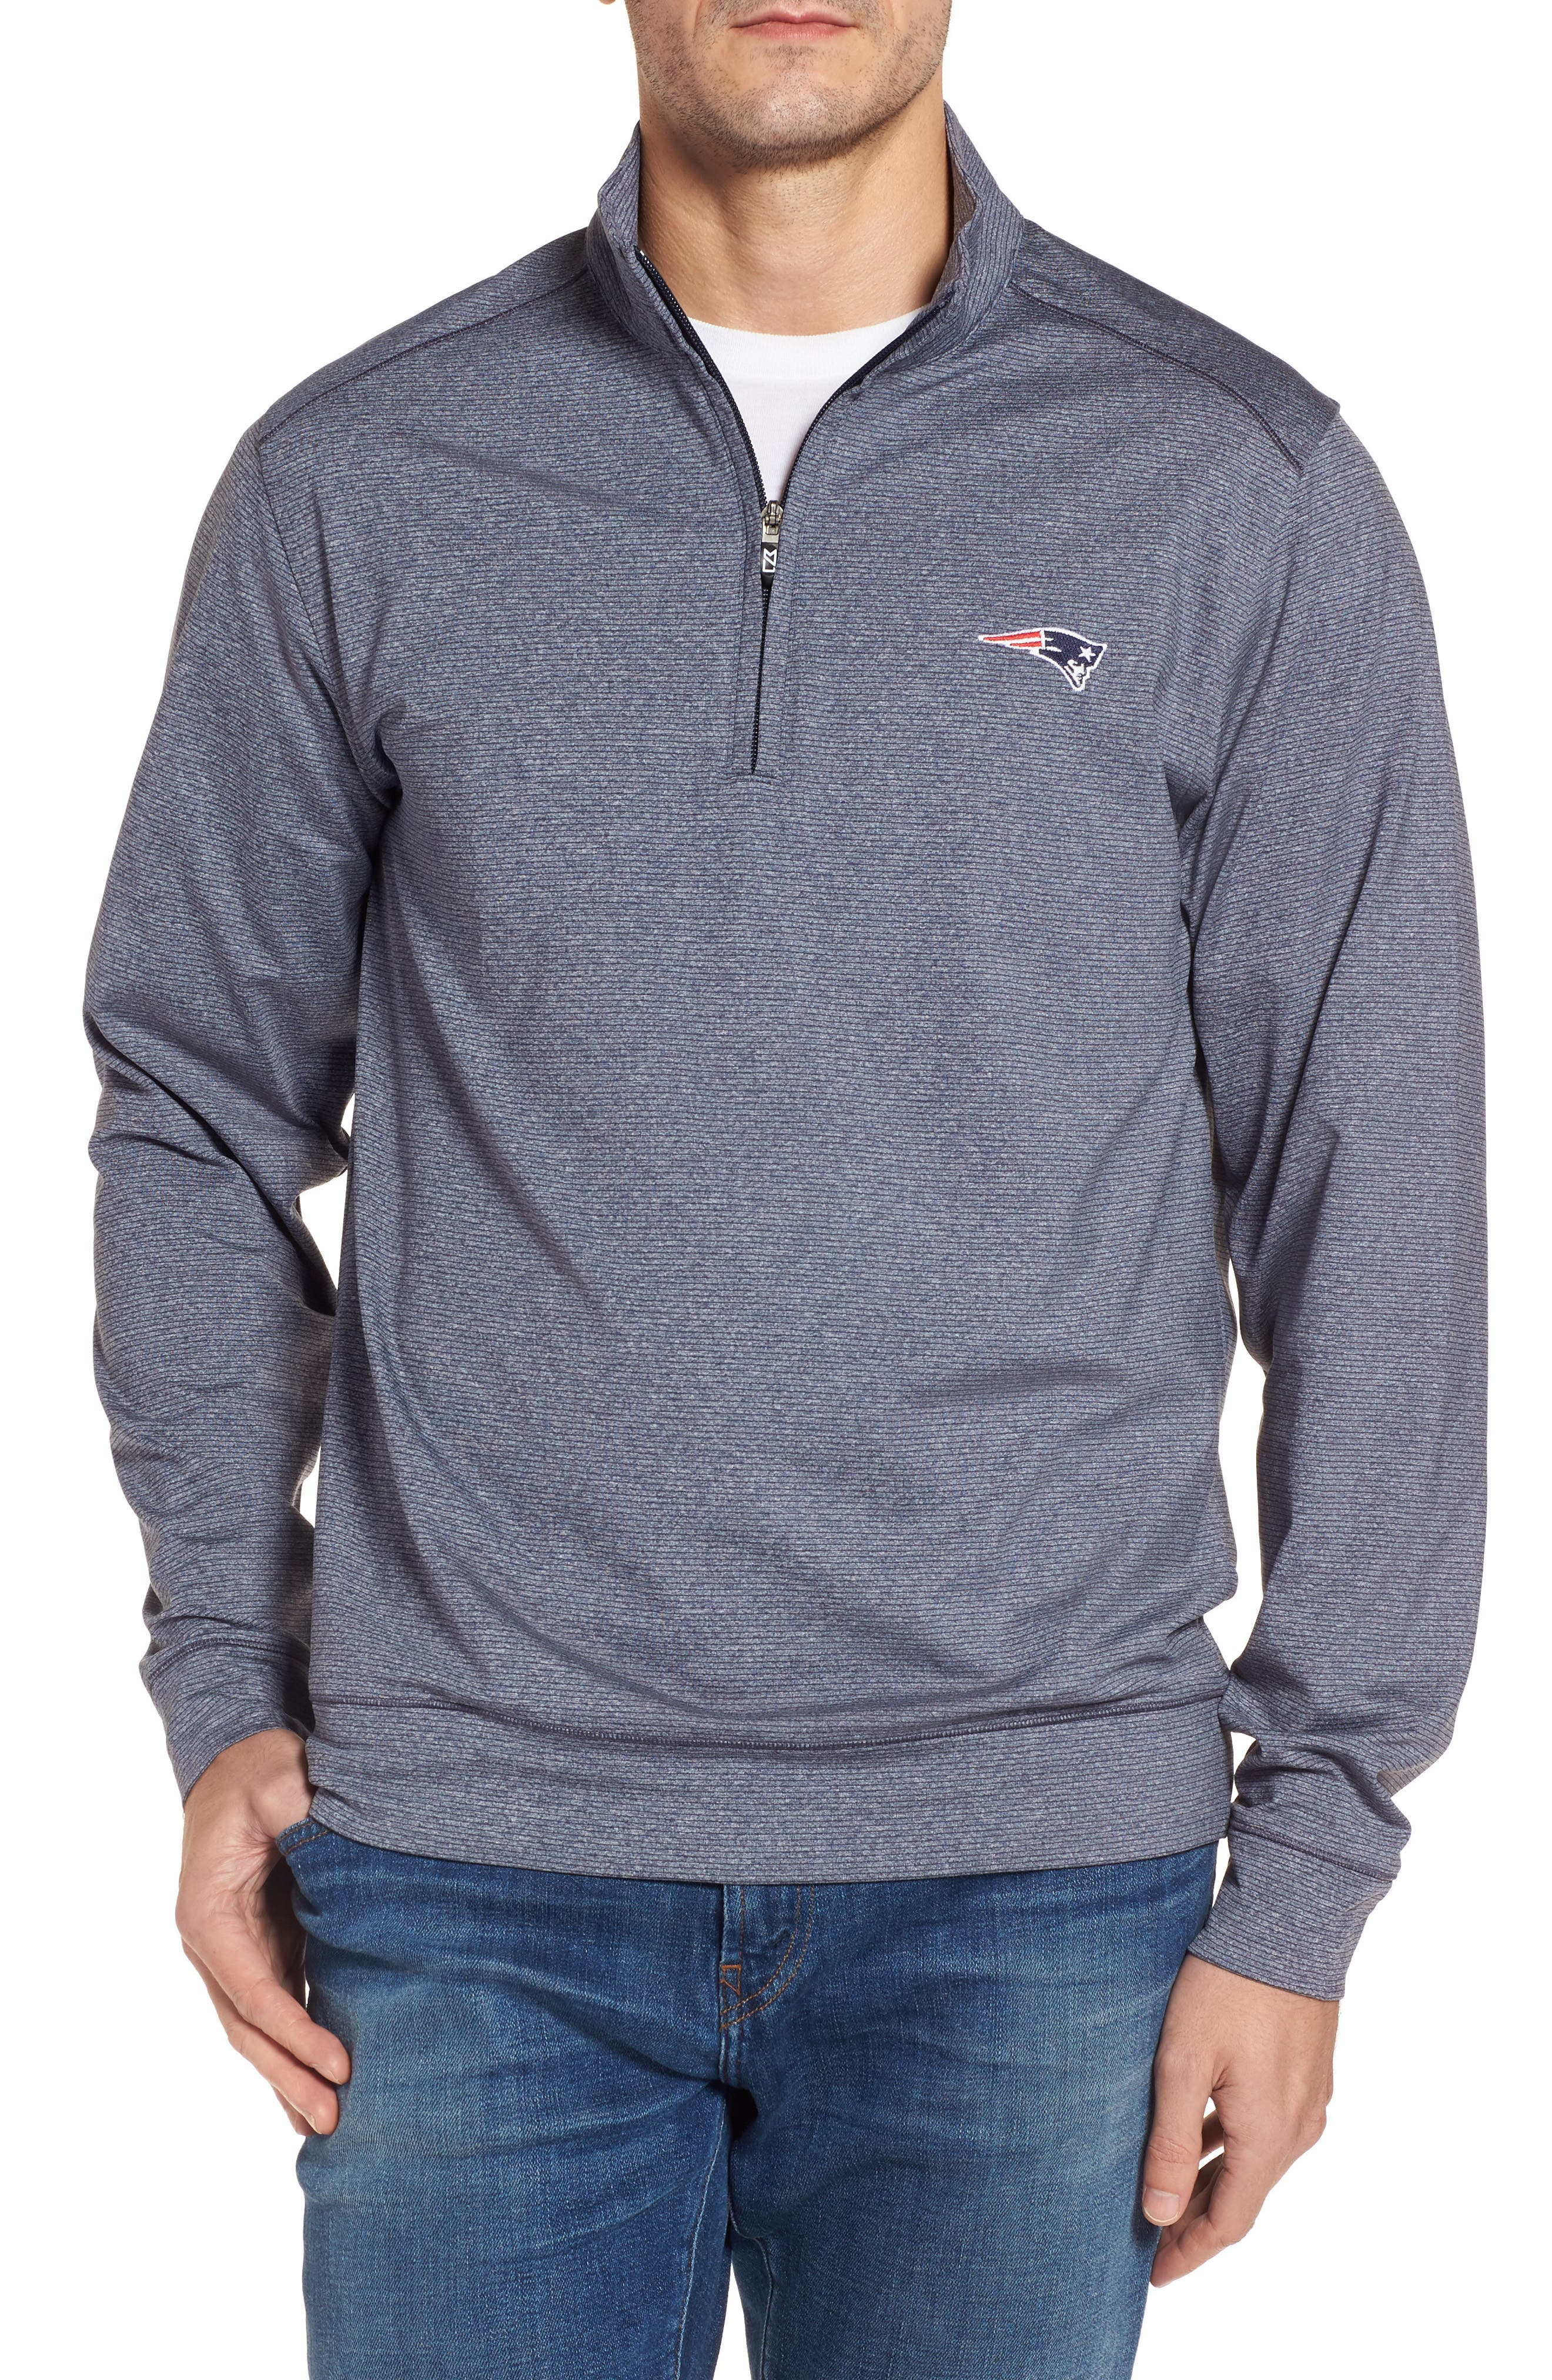 Shoreline - New England Patriots Half Zip Pullover,                             Main thumbnail 1, color,                             976